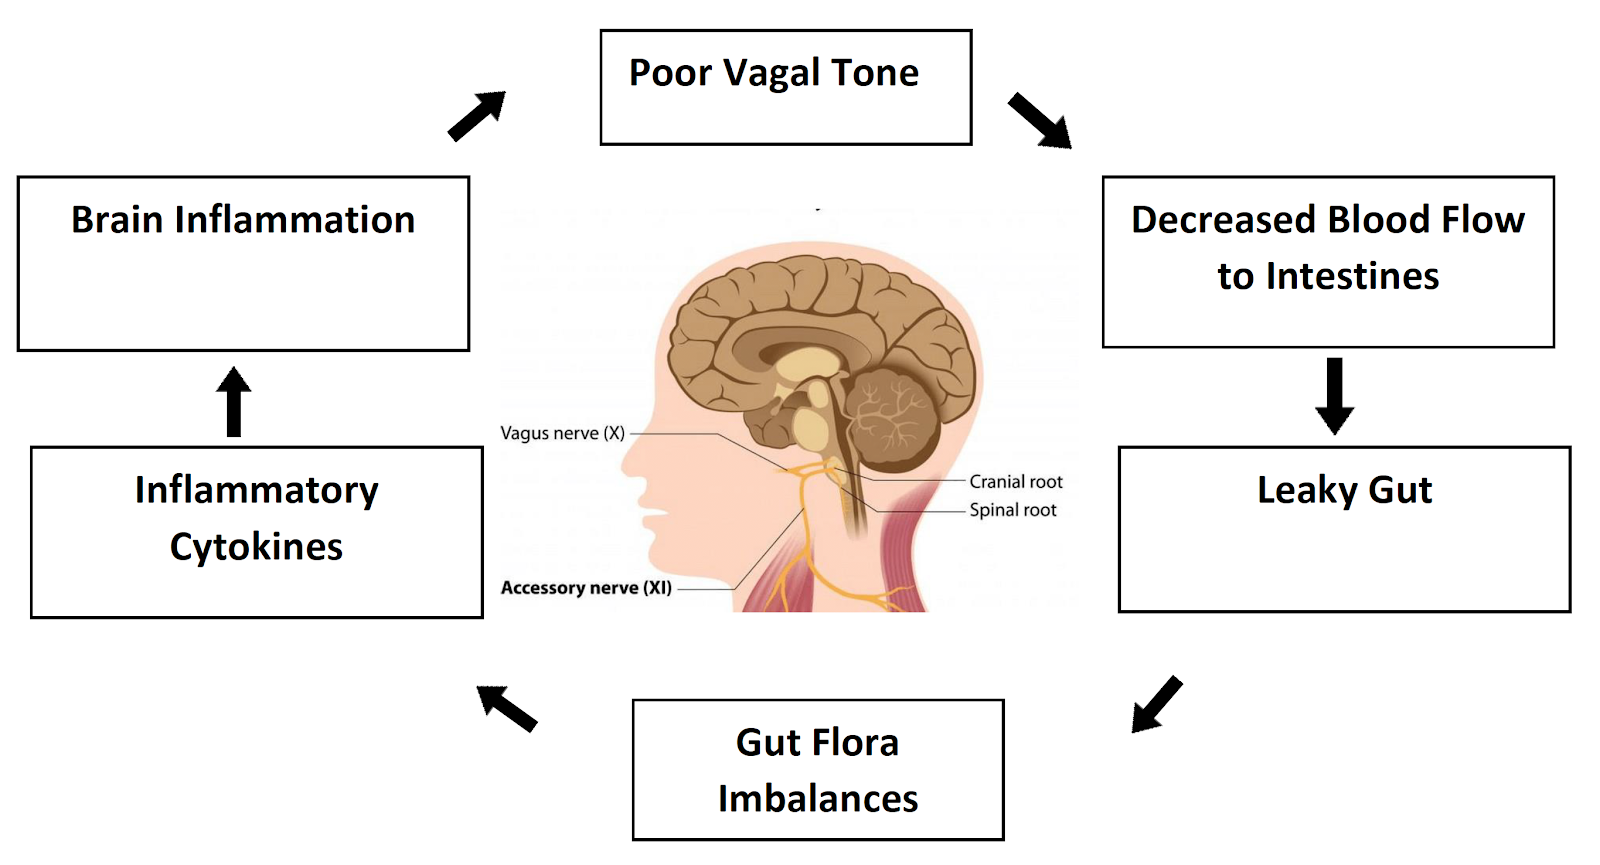 Therefore, many health problems can arise when the Vagus nerve is not properly firing into the digestive organs as illustrated below. Poor Vagal Tone Decreased Blood Flow to Intestines Leaky Gut Gut Flora Imbalances Inflammatory Cytokines Brain Inflammation.